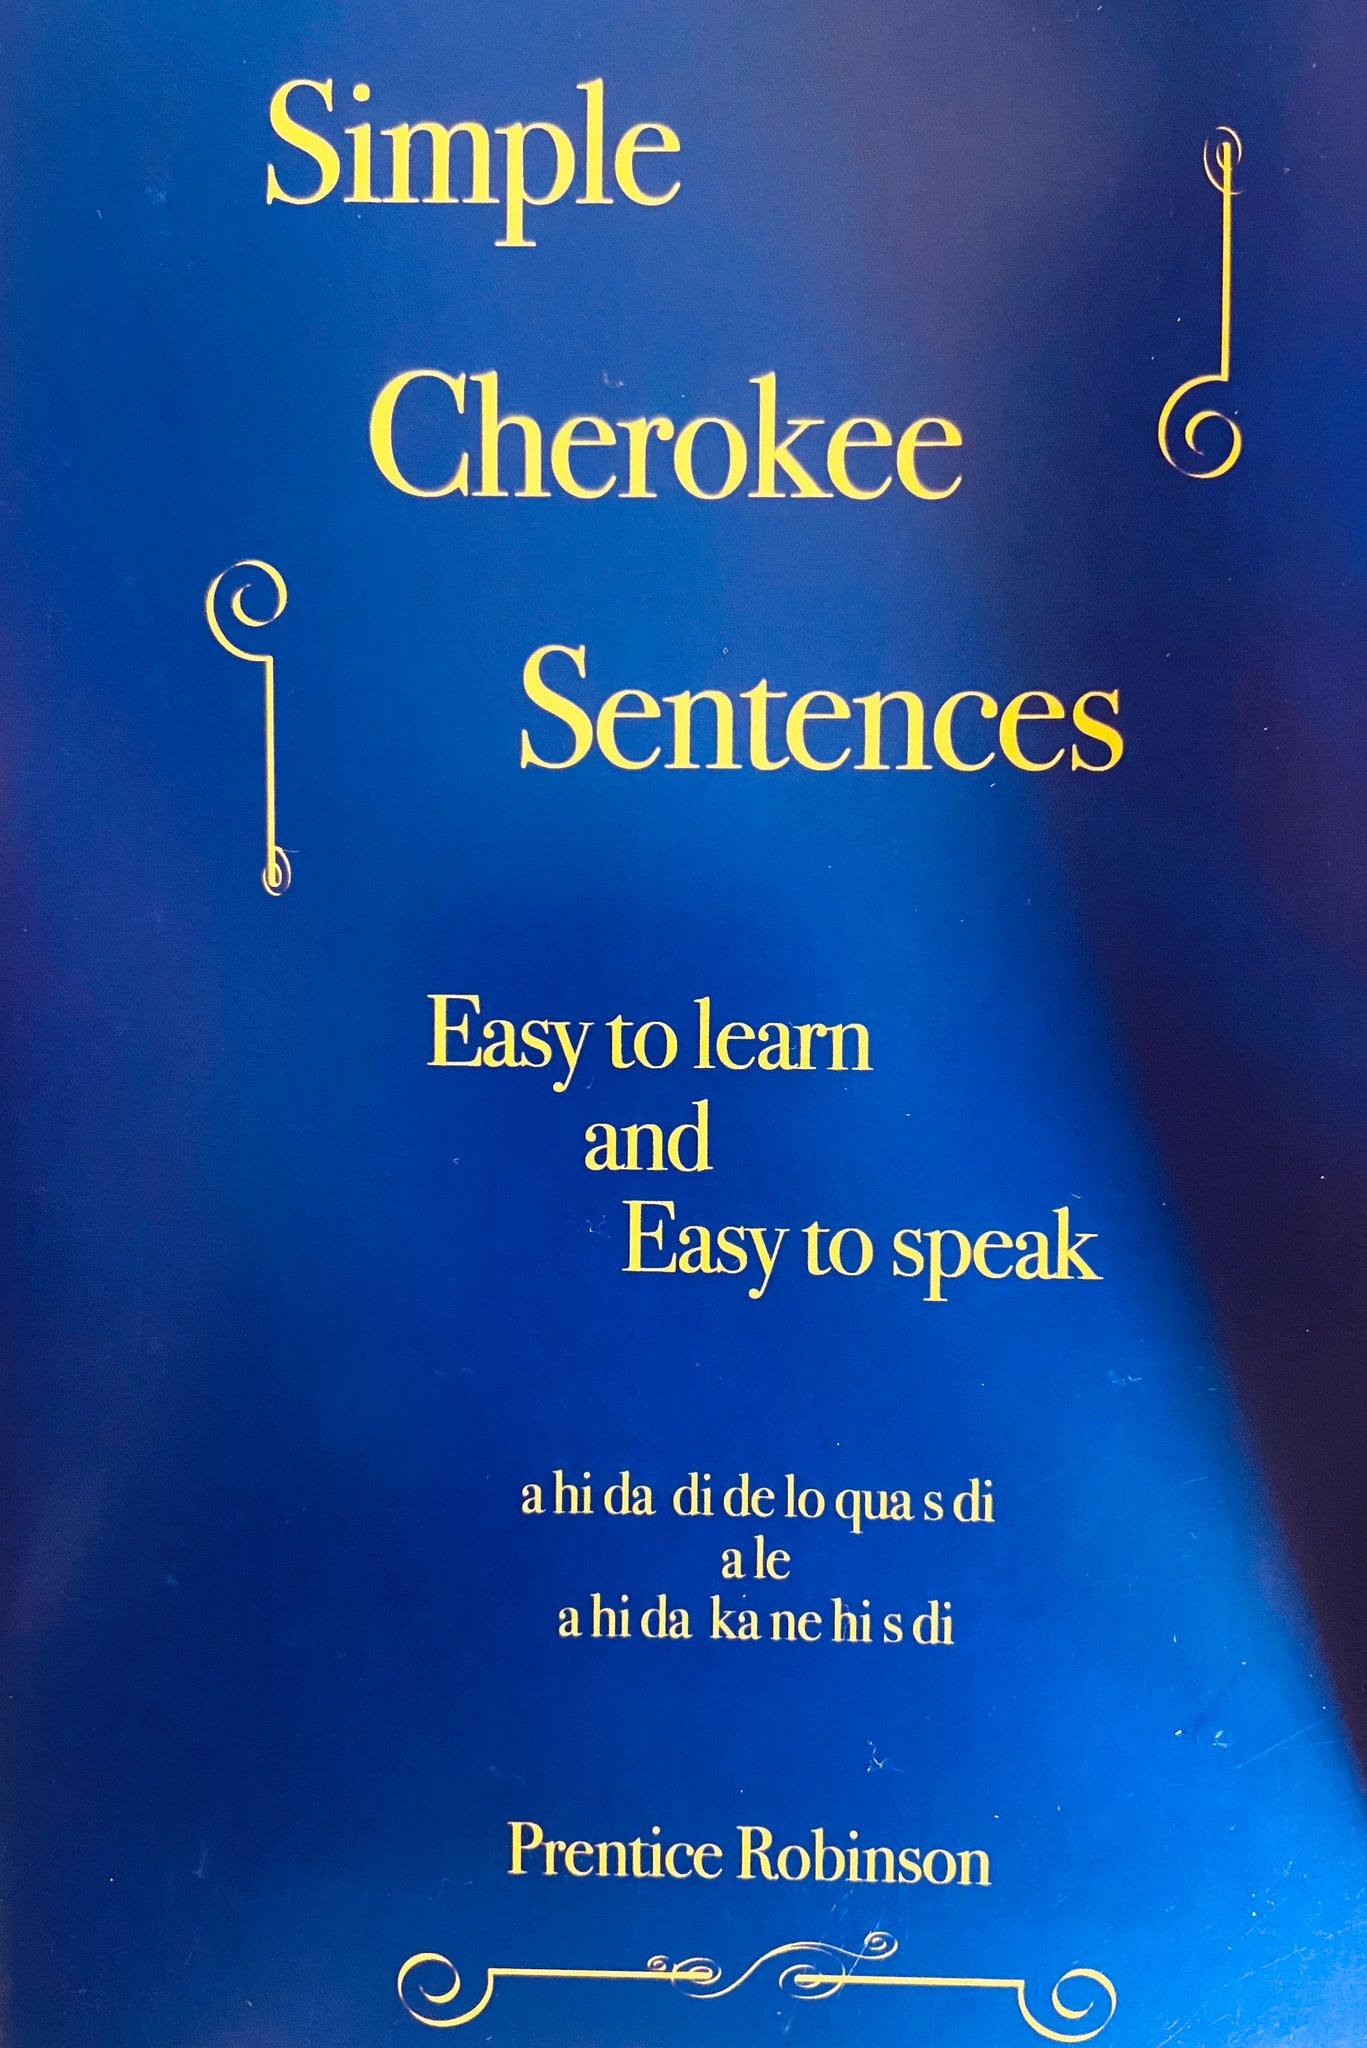 Simple Cherokee Sentences Book